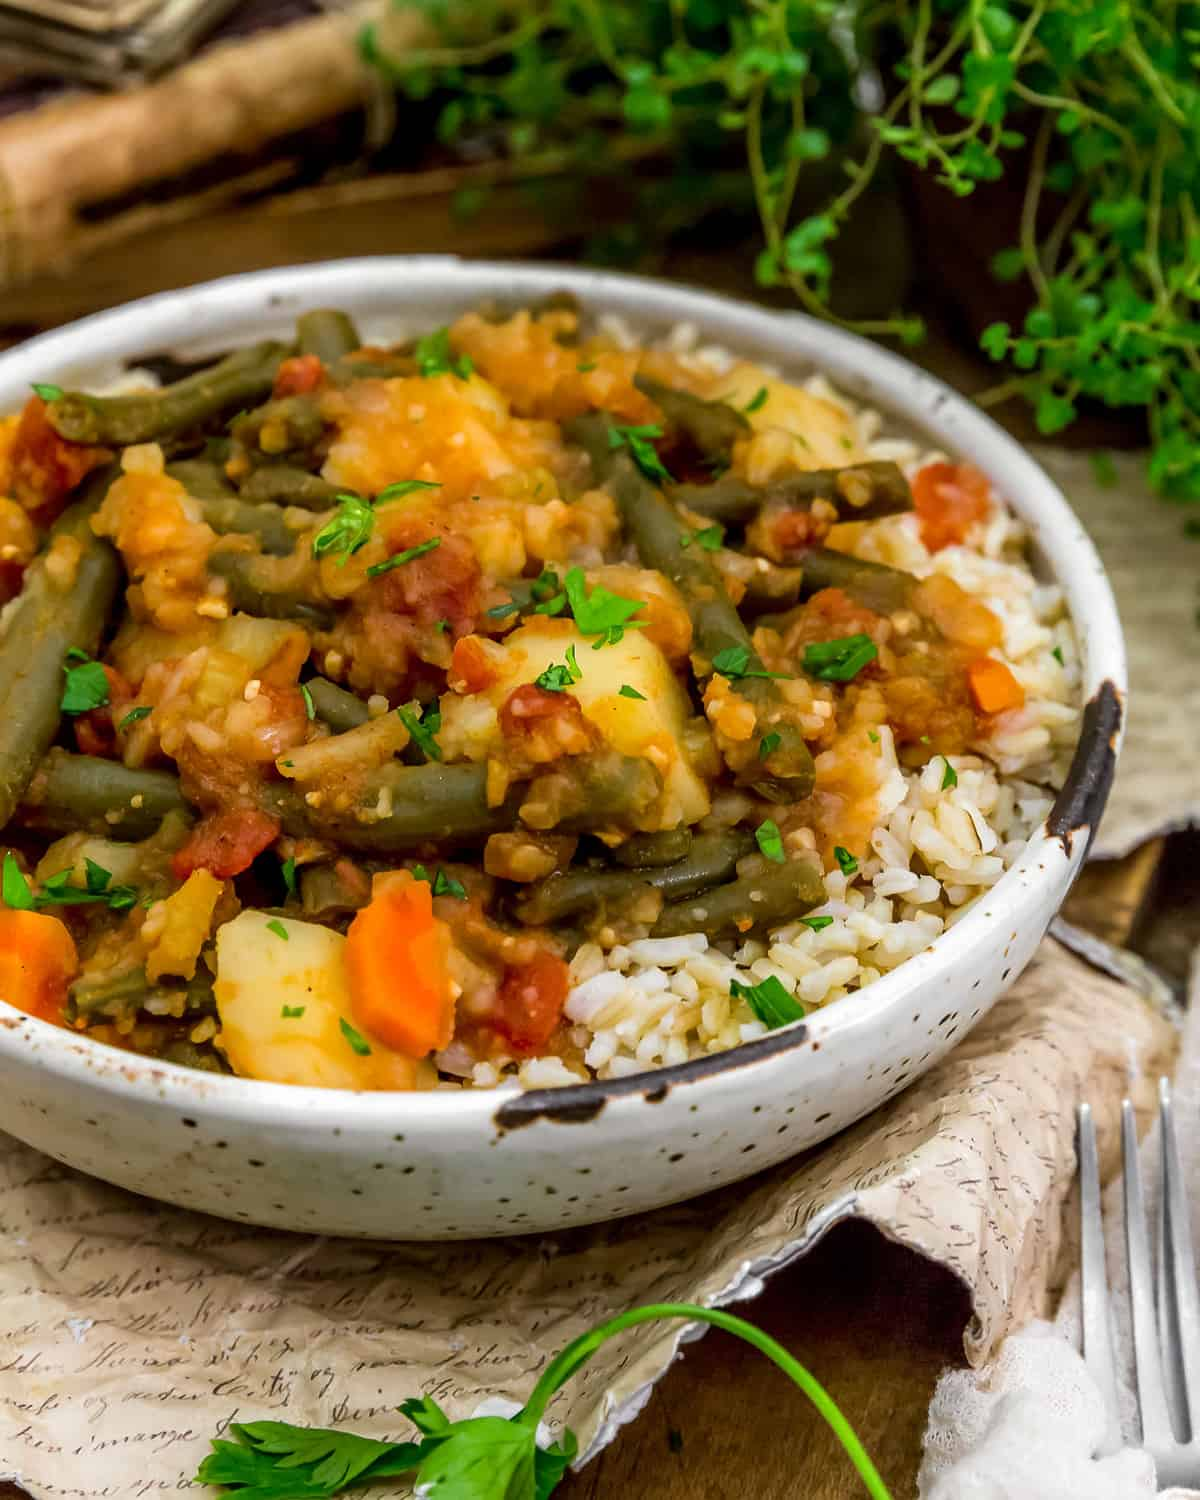 Bowl of Lebanese Stewed Green Beans and Potatoes